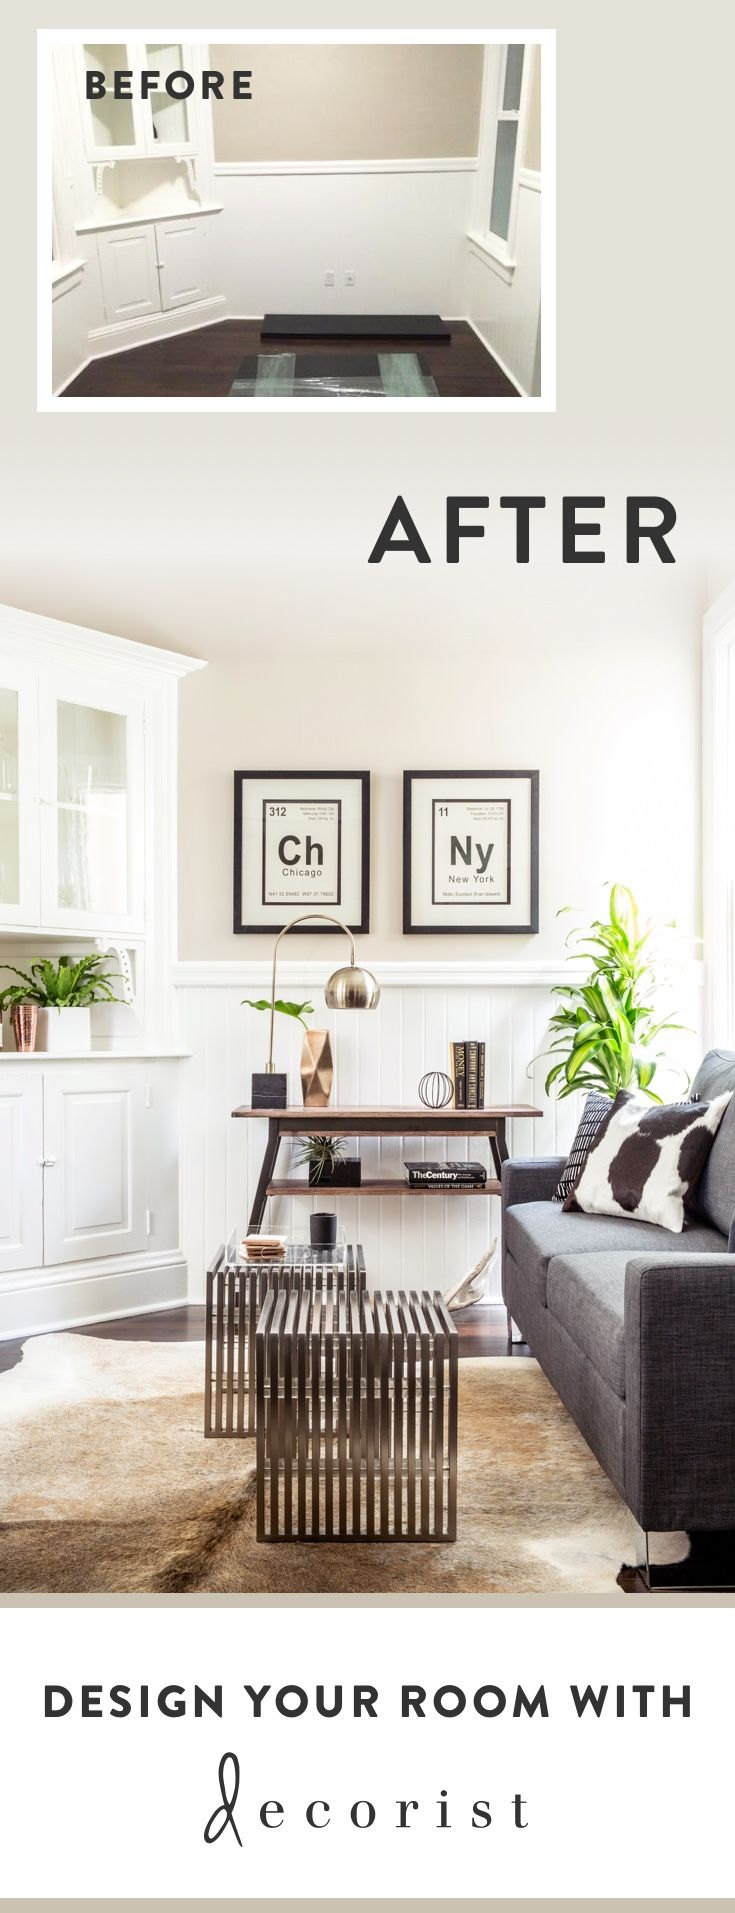 Help Designing A Room: A Hip And Modern Bachelor Pad